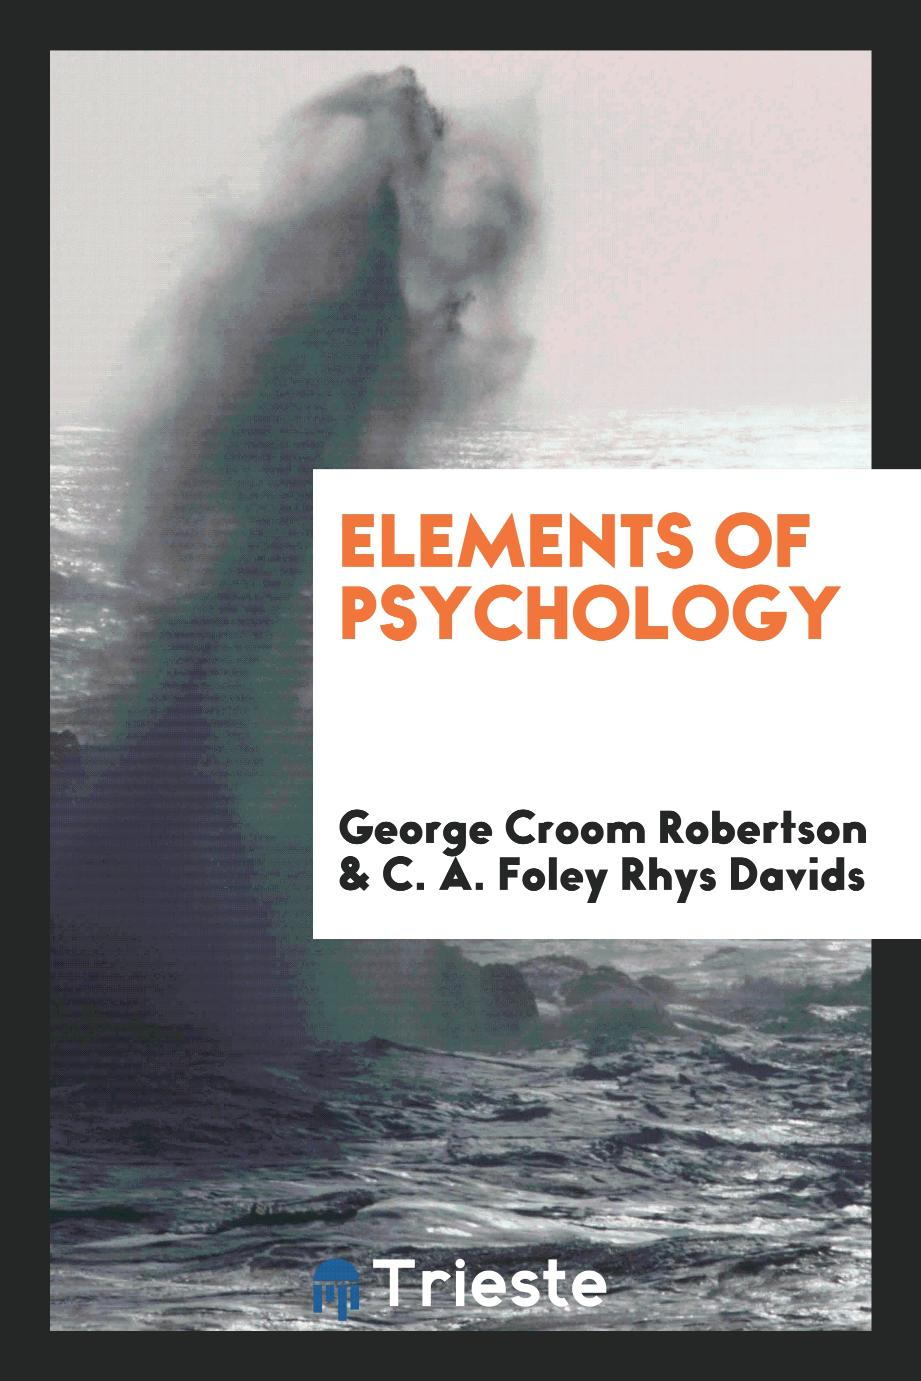 Elements of psychology